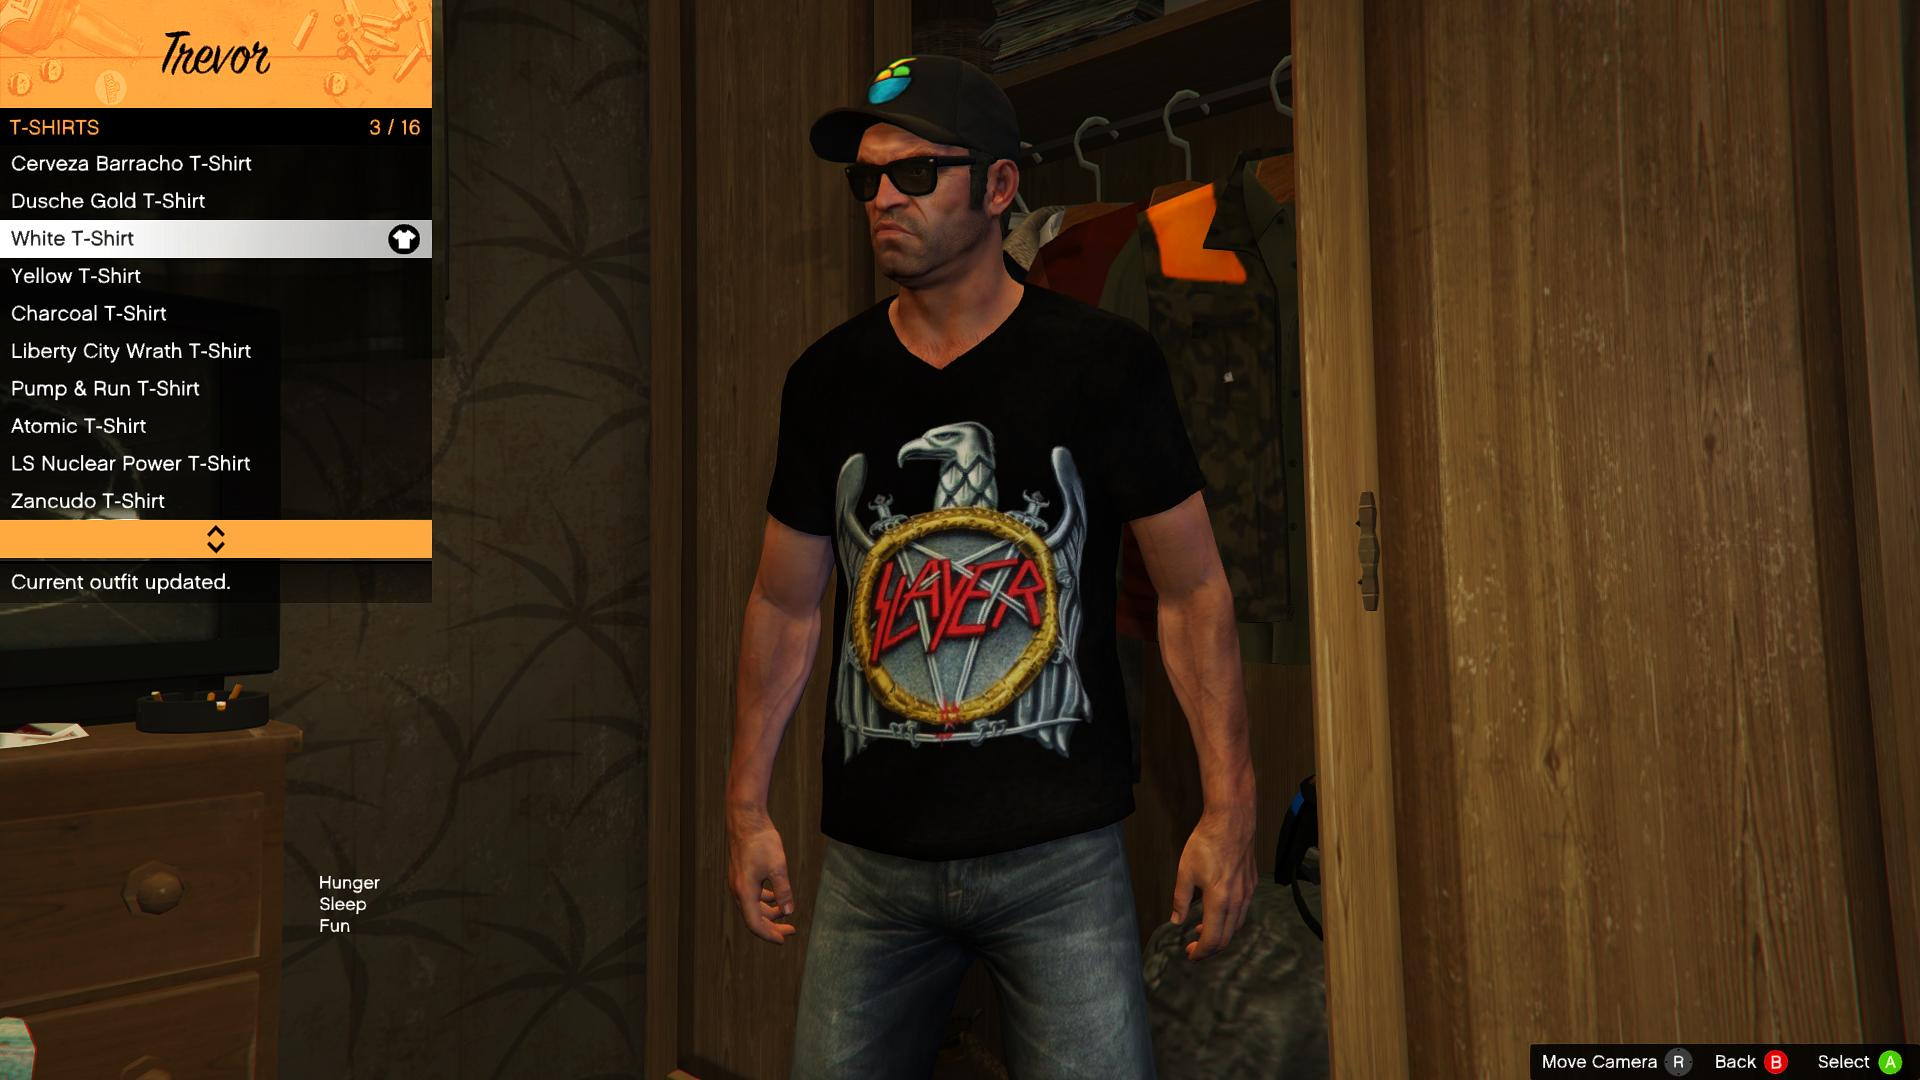 trevor 39 s metal shirts final gta5. Black Bedroom Furniture Sets. Home Design Ideas